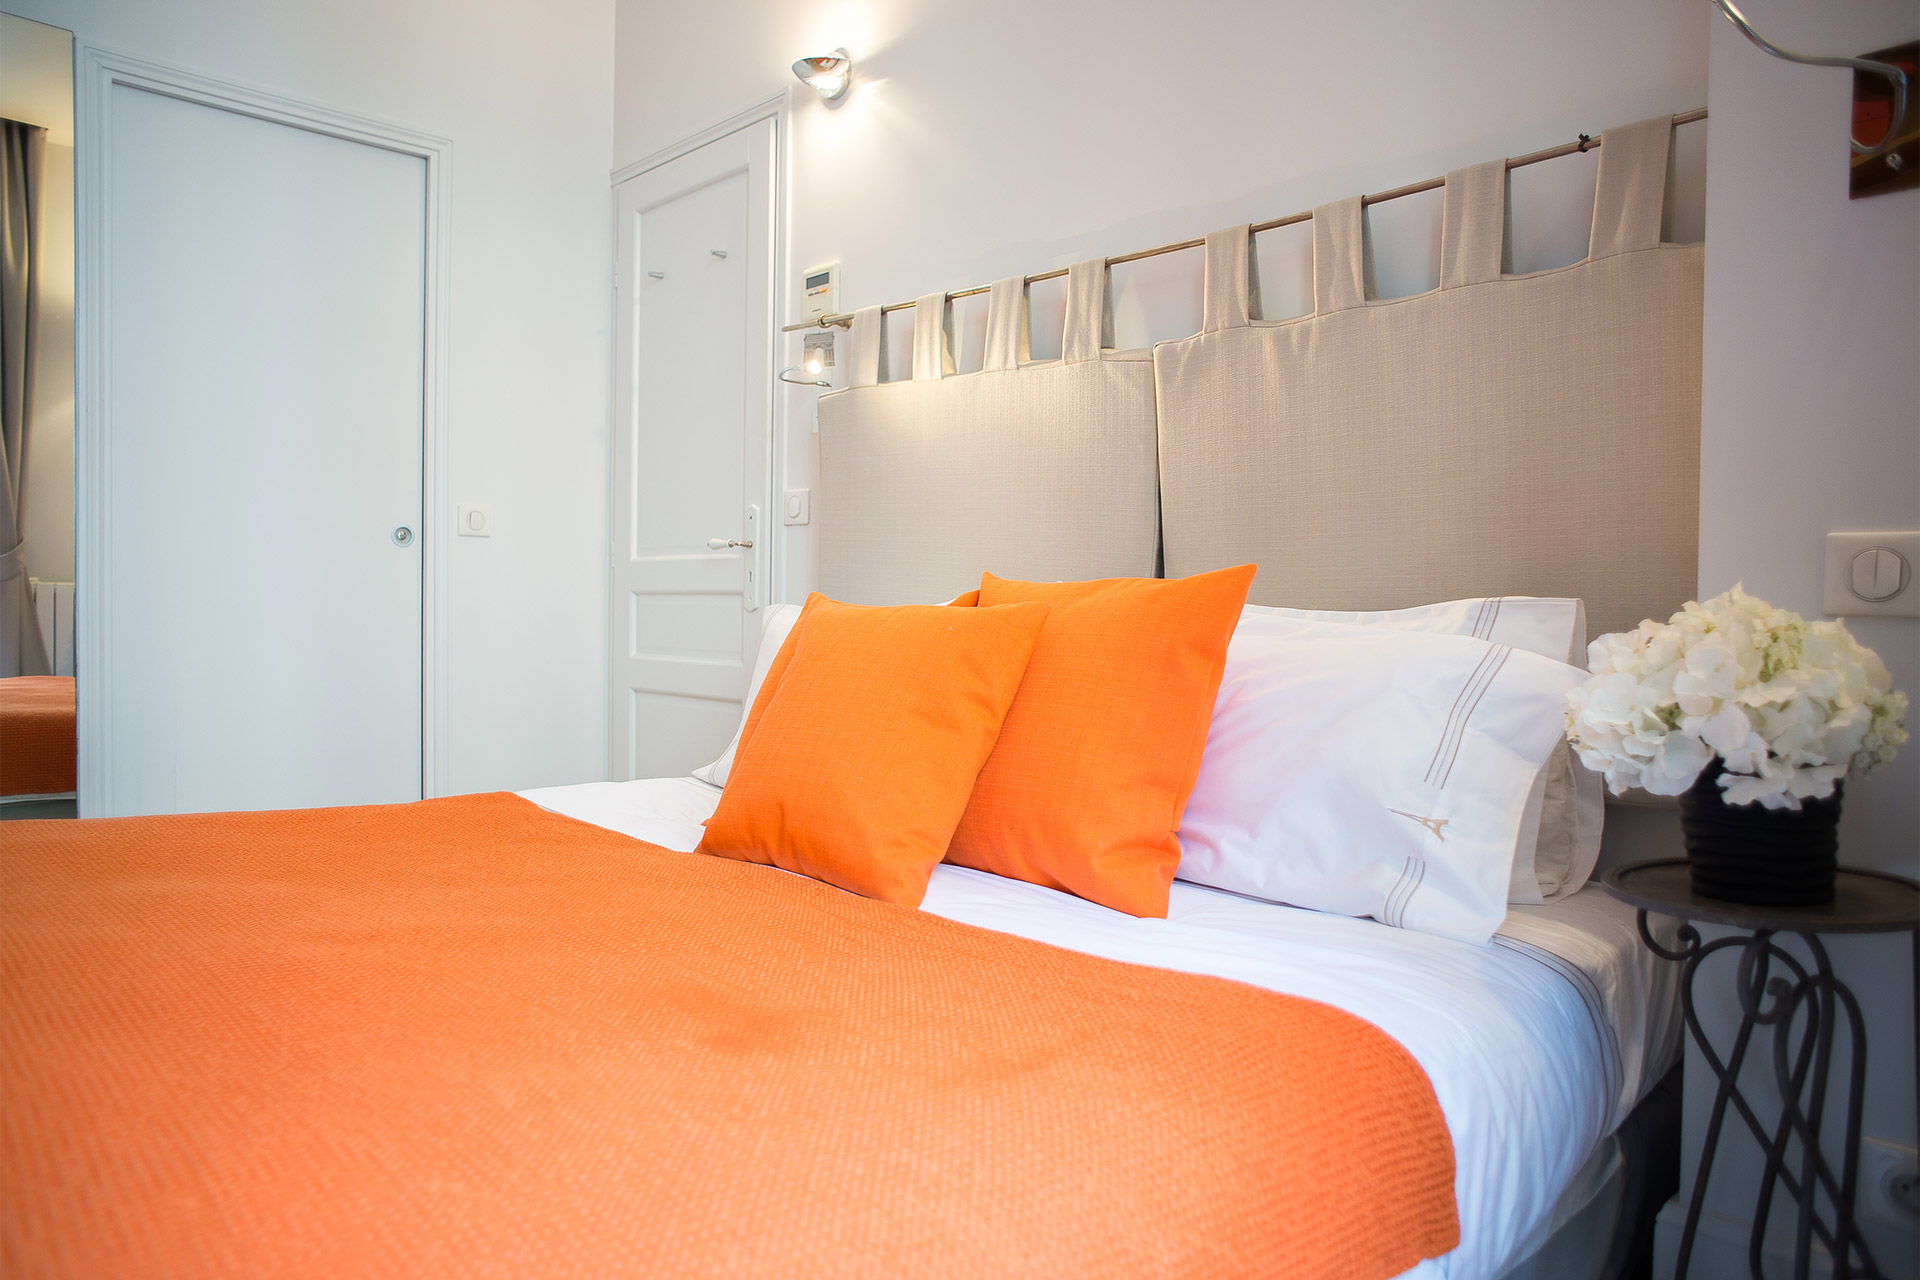 Luxurious bedding in the Bel-Air vacation rental offered by Paris Perfect